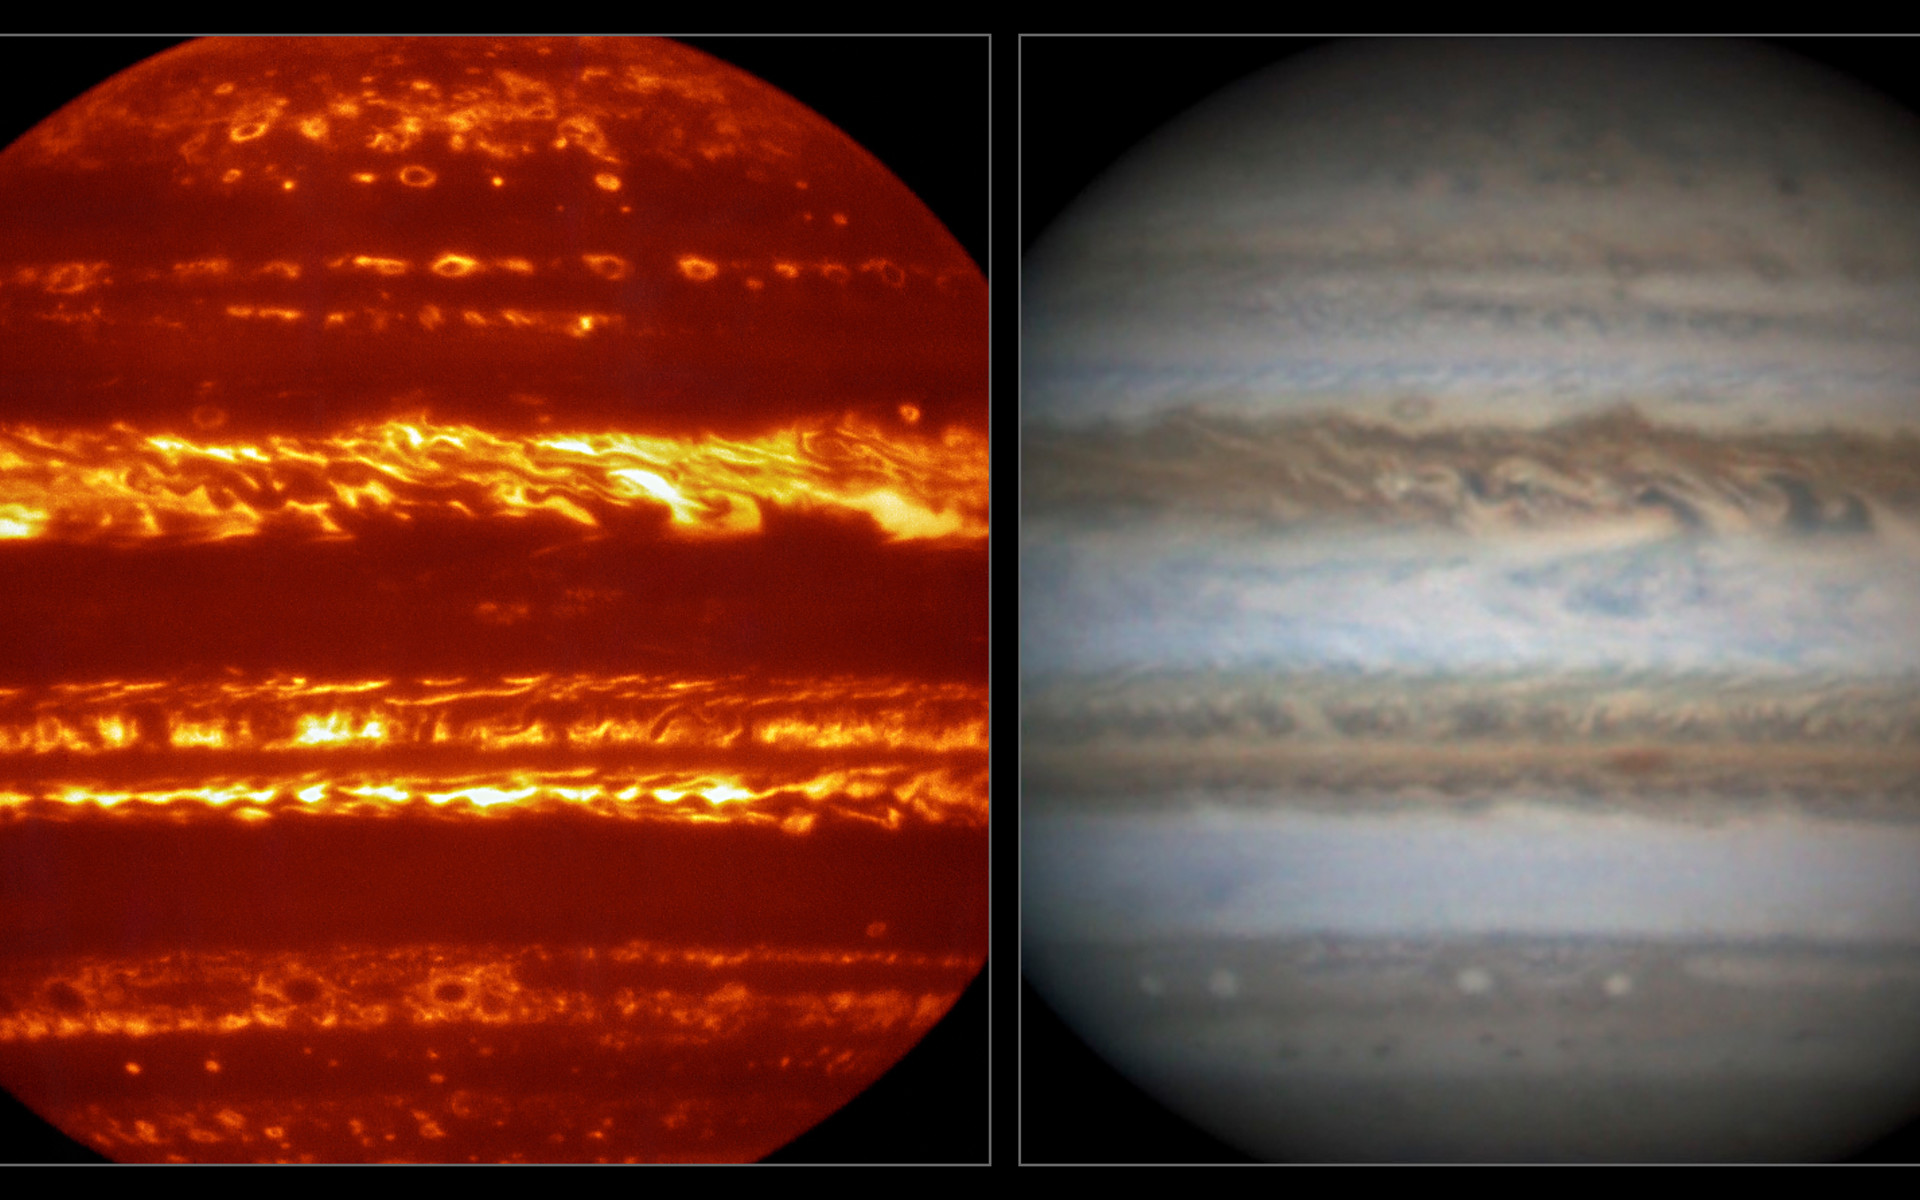 This view compares a lucky imaging view of Jupiter from VISIR (left) at infrared wavelengths with a very sharp amateur image in visible light from about the same time (right). - Image   Credit:ESO/L.N. Fletcher/Damian Peach